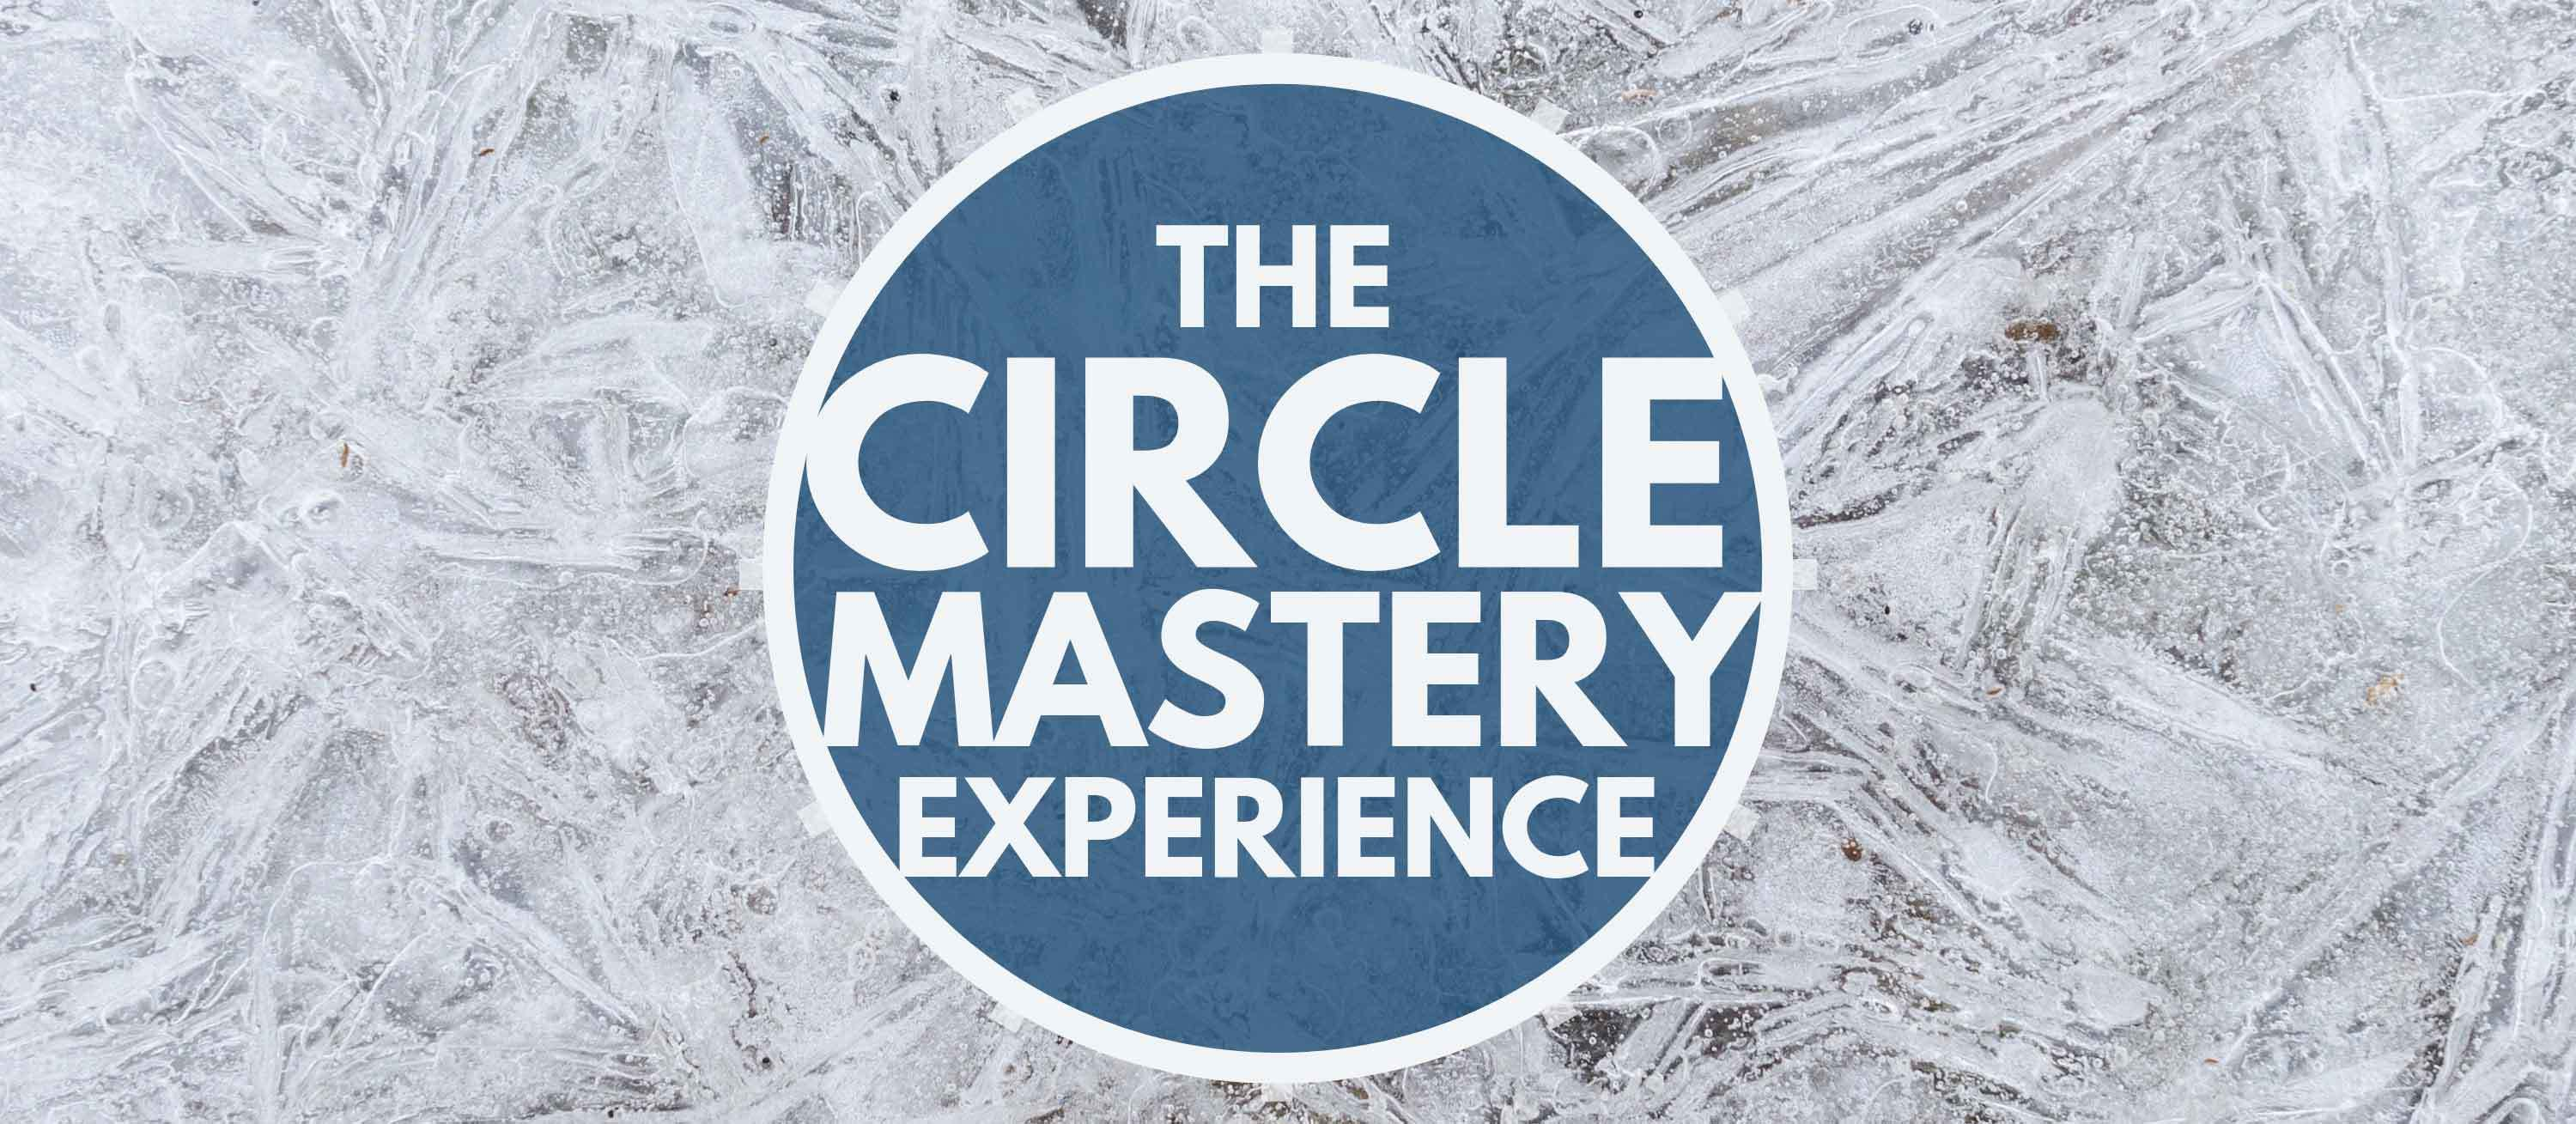 The Circle Mastery Experience